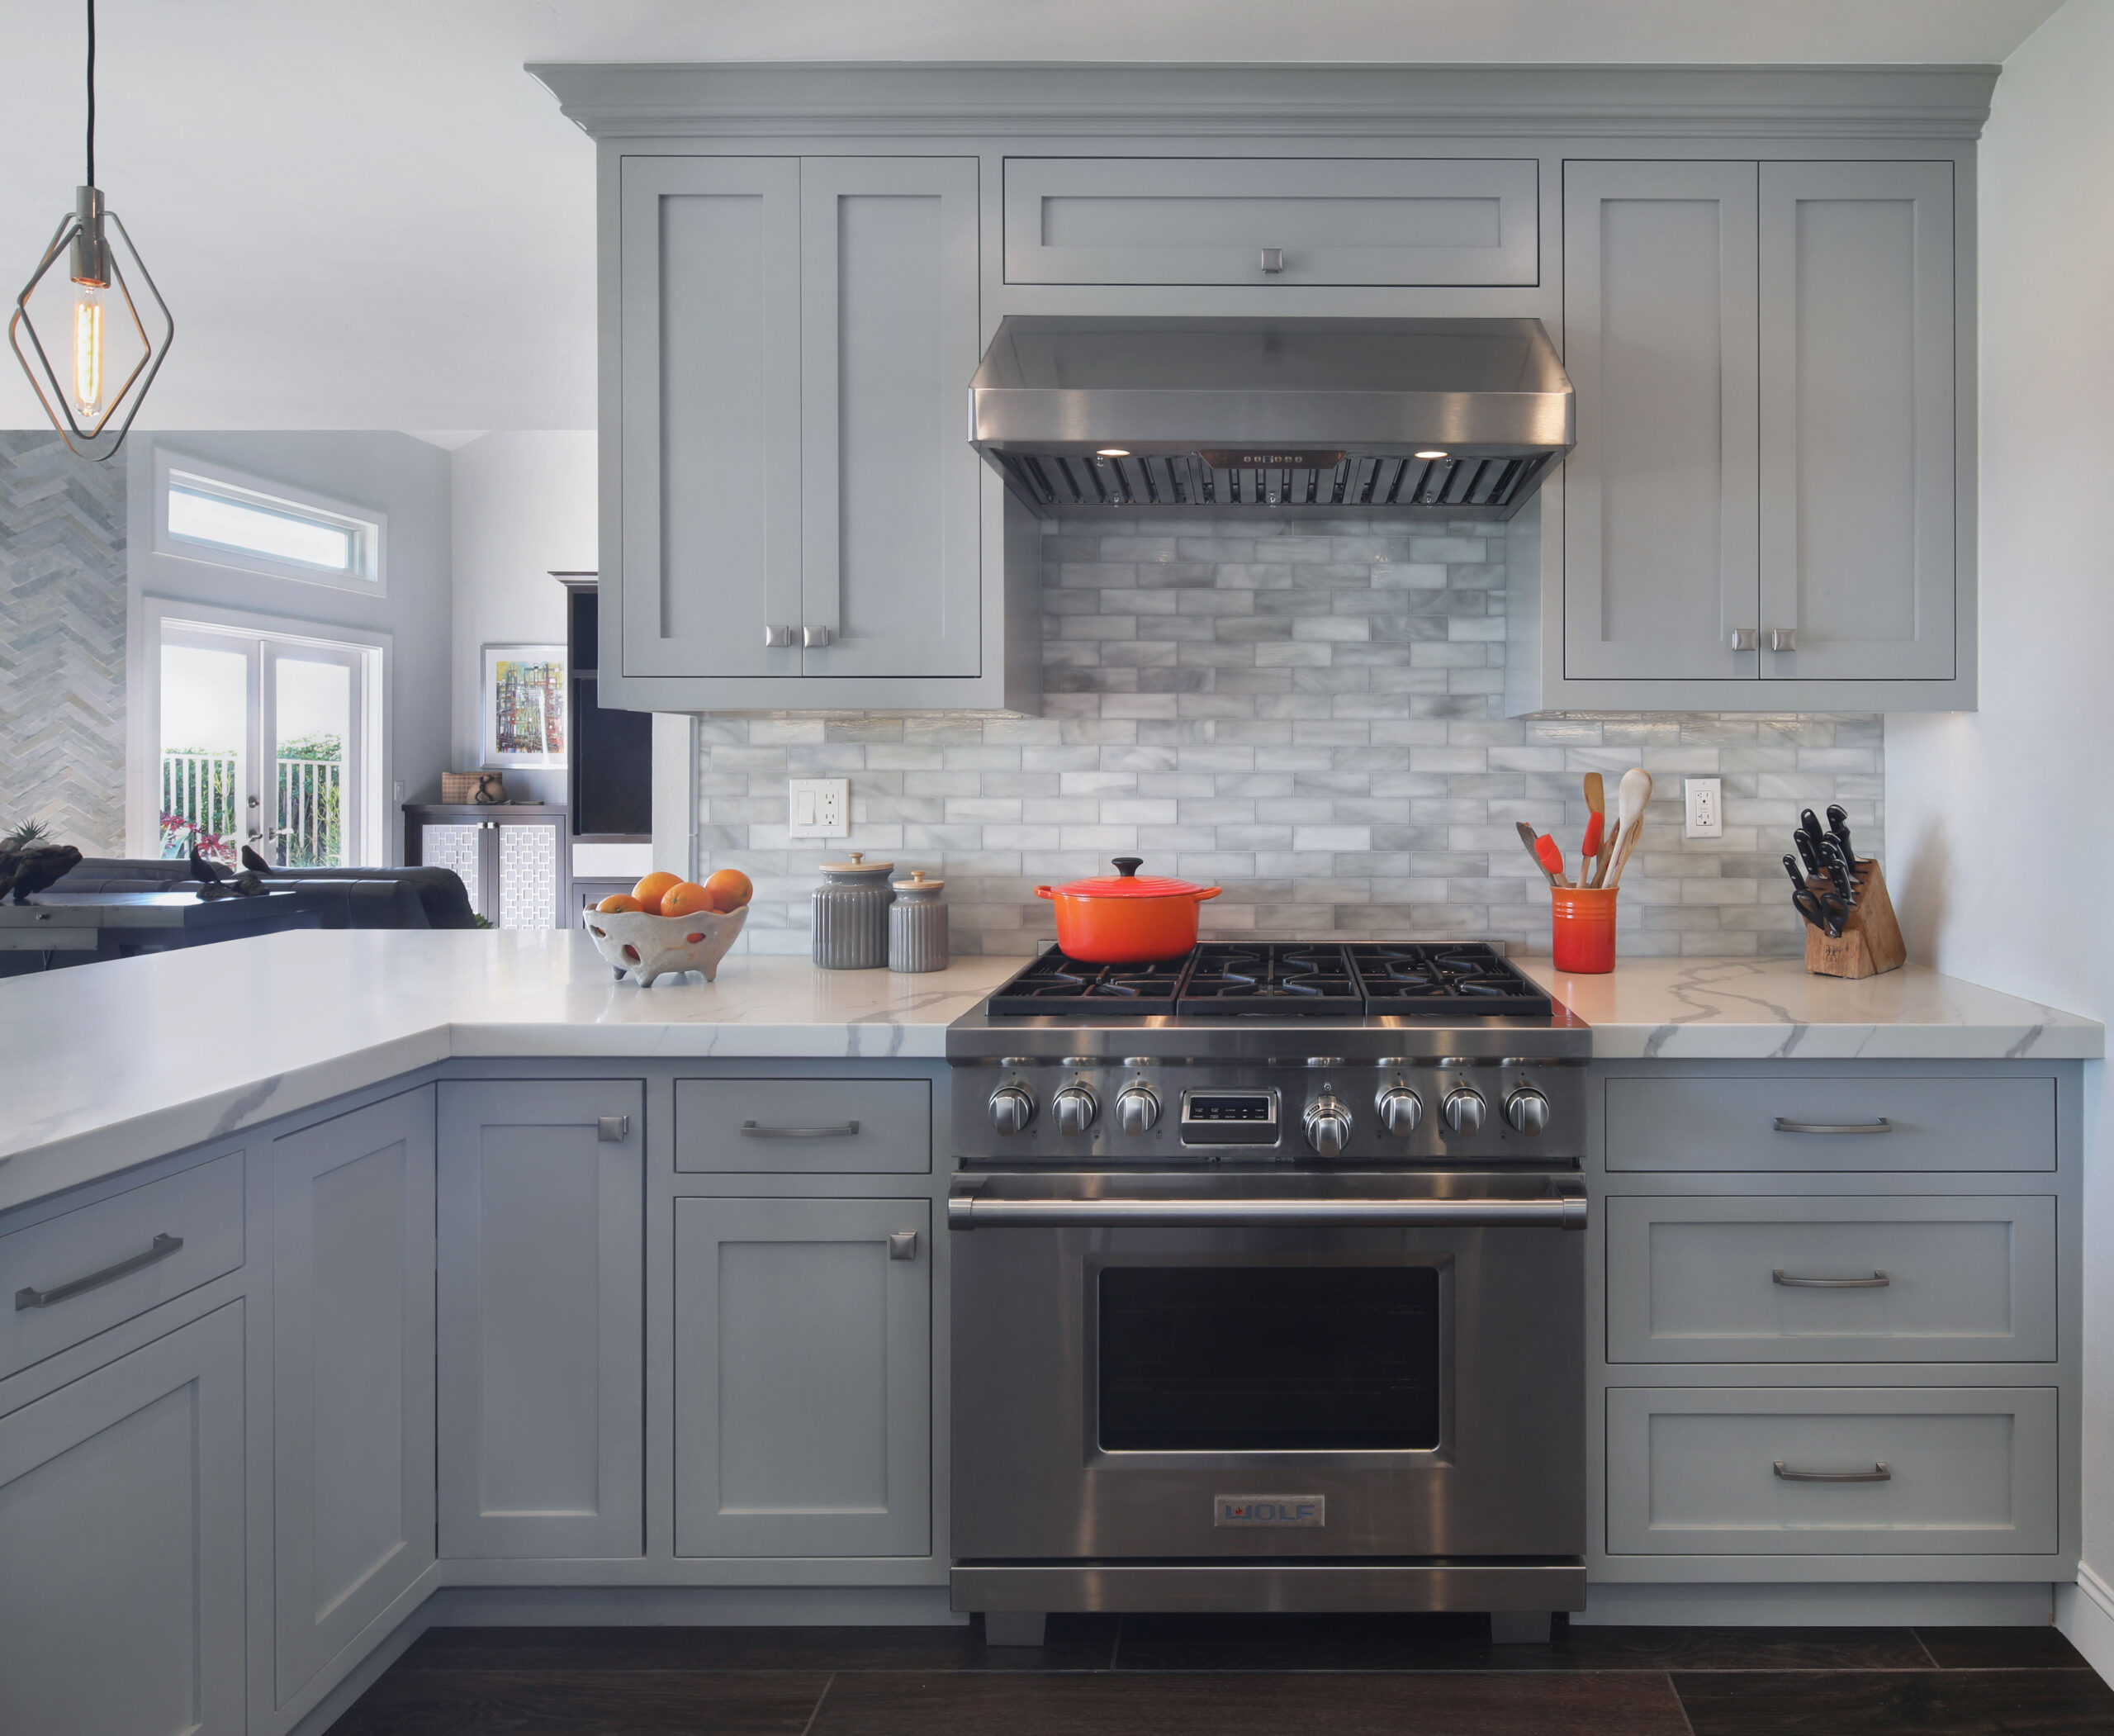 Contemporary kitchen in gray